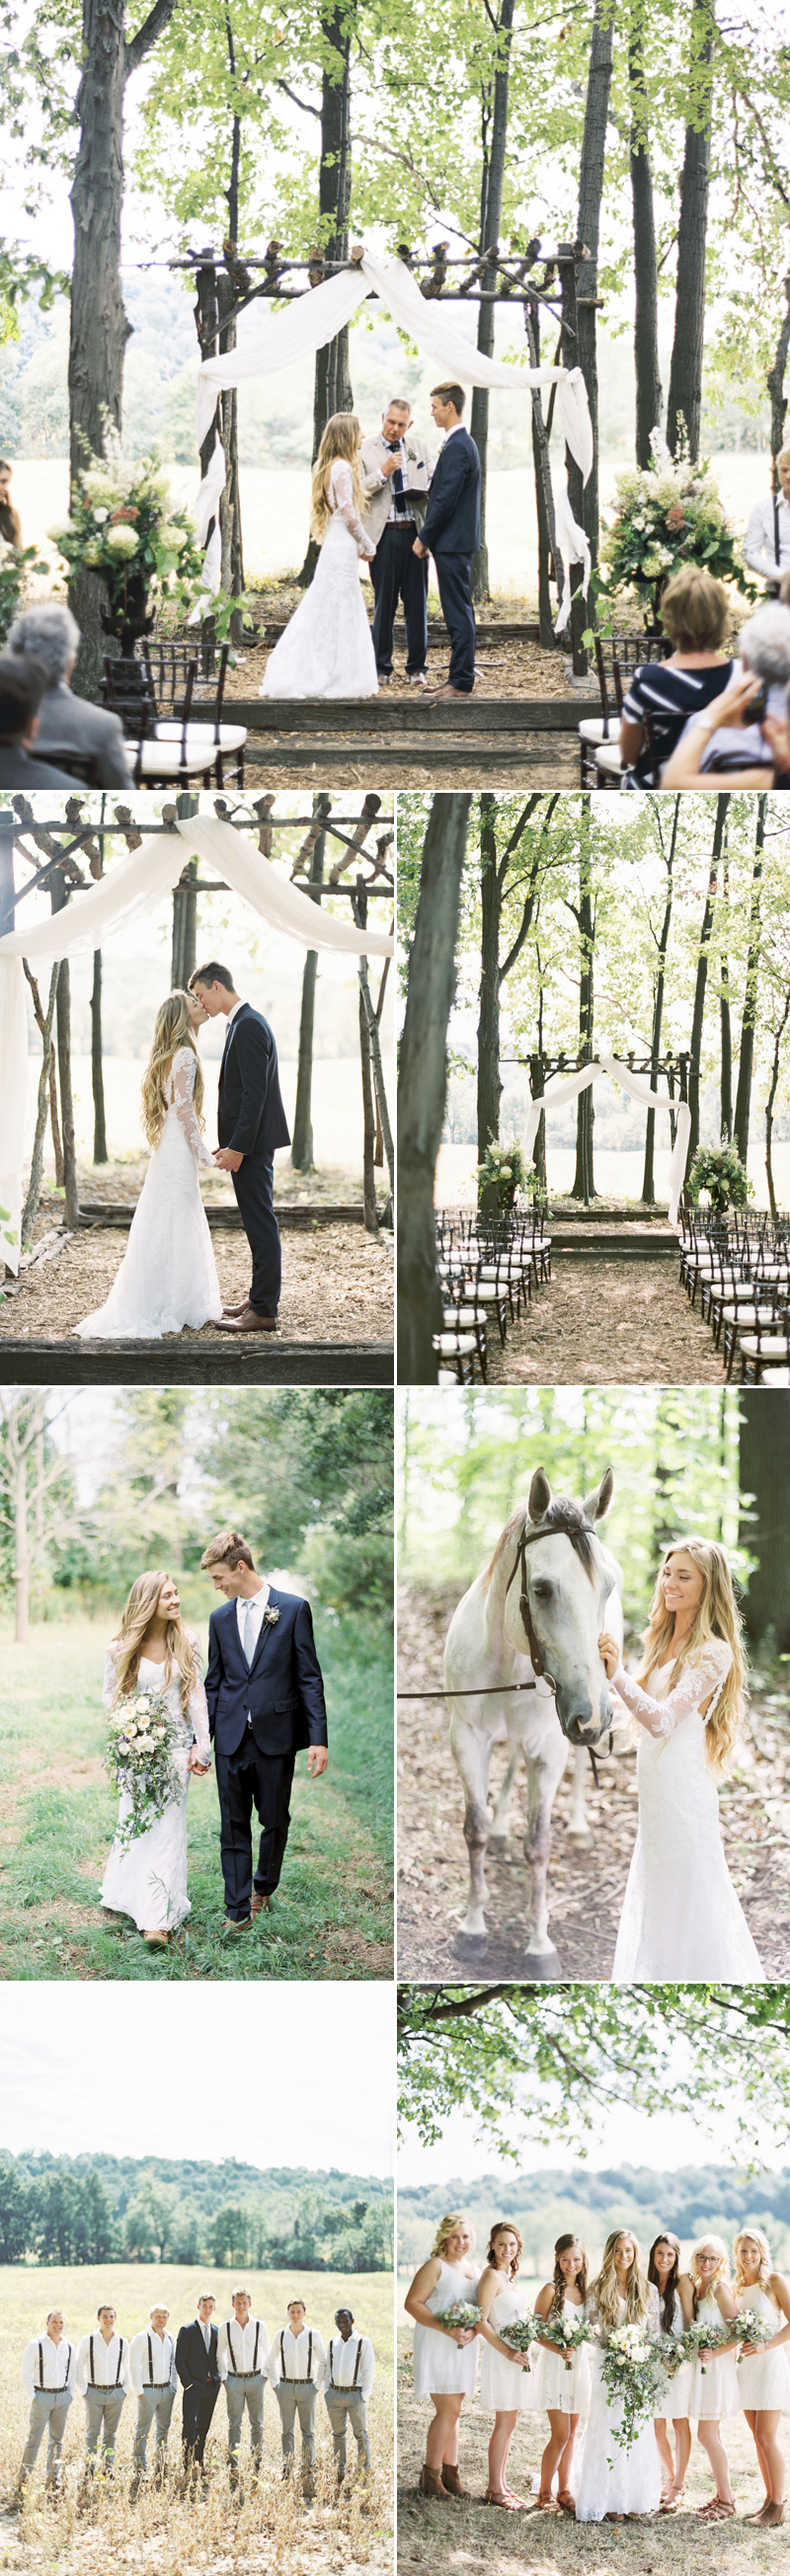 forestwedding05-Boho Forest Wedding (Andrew Mark Photography)